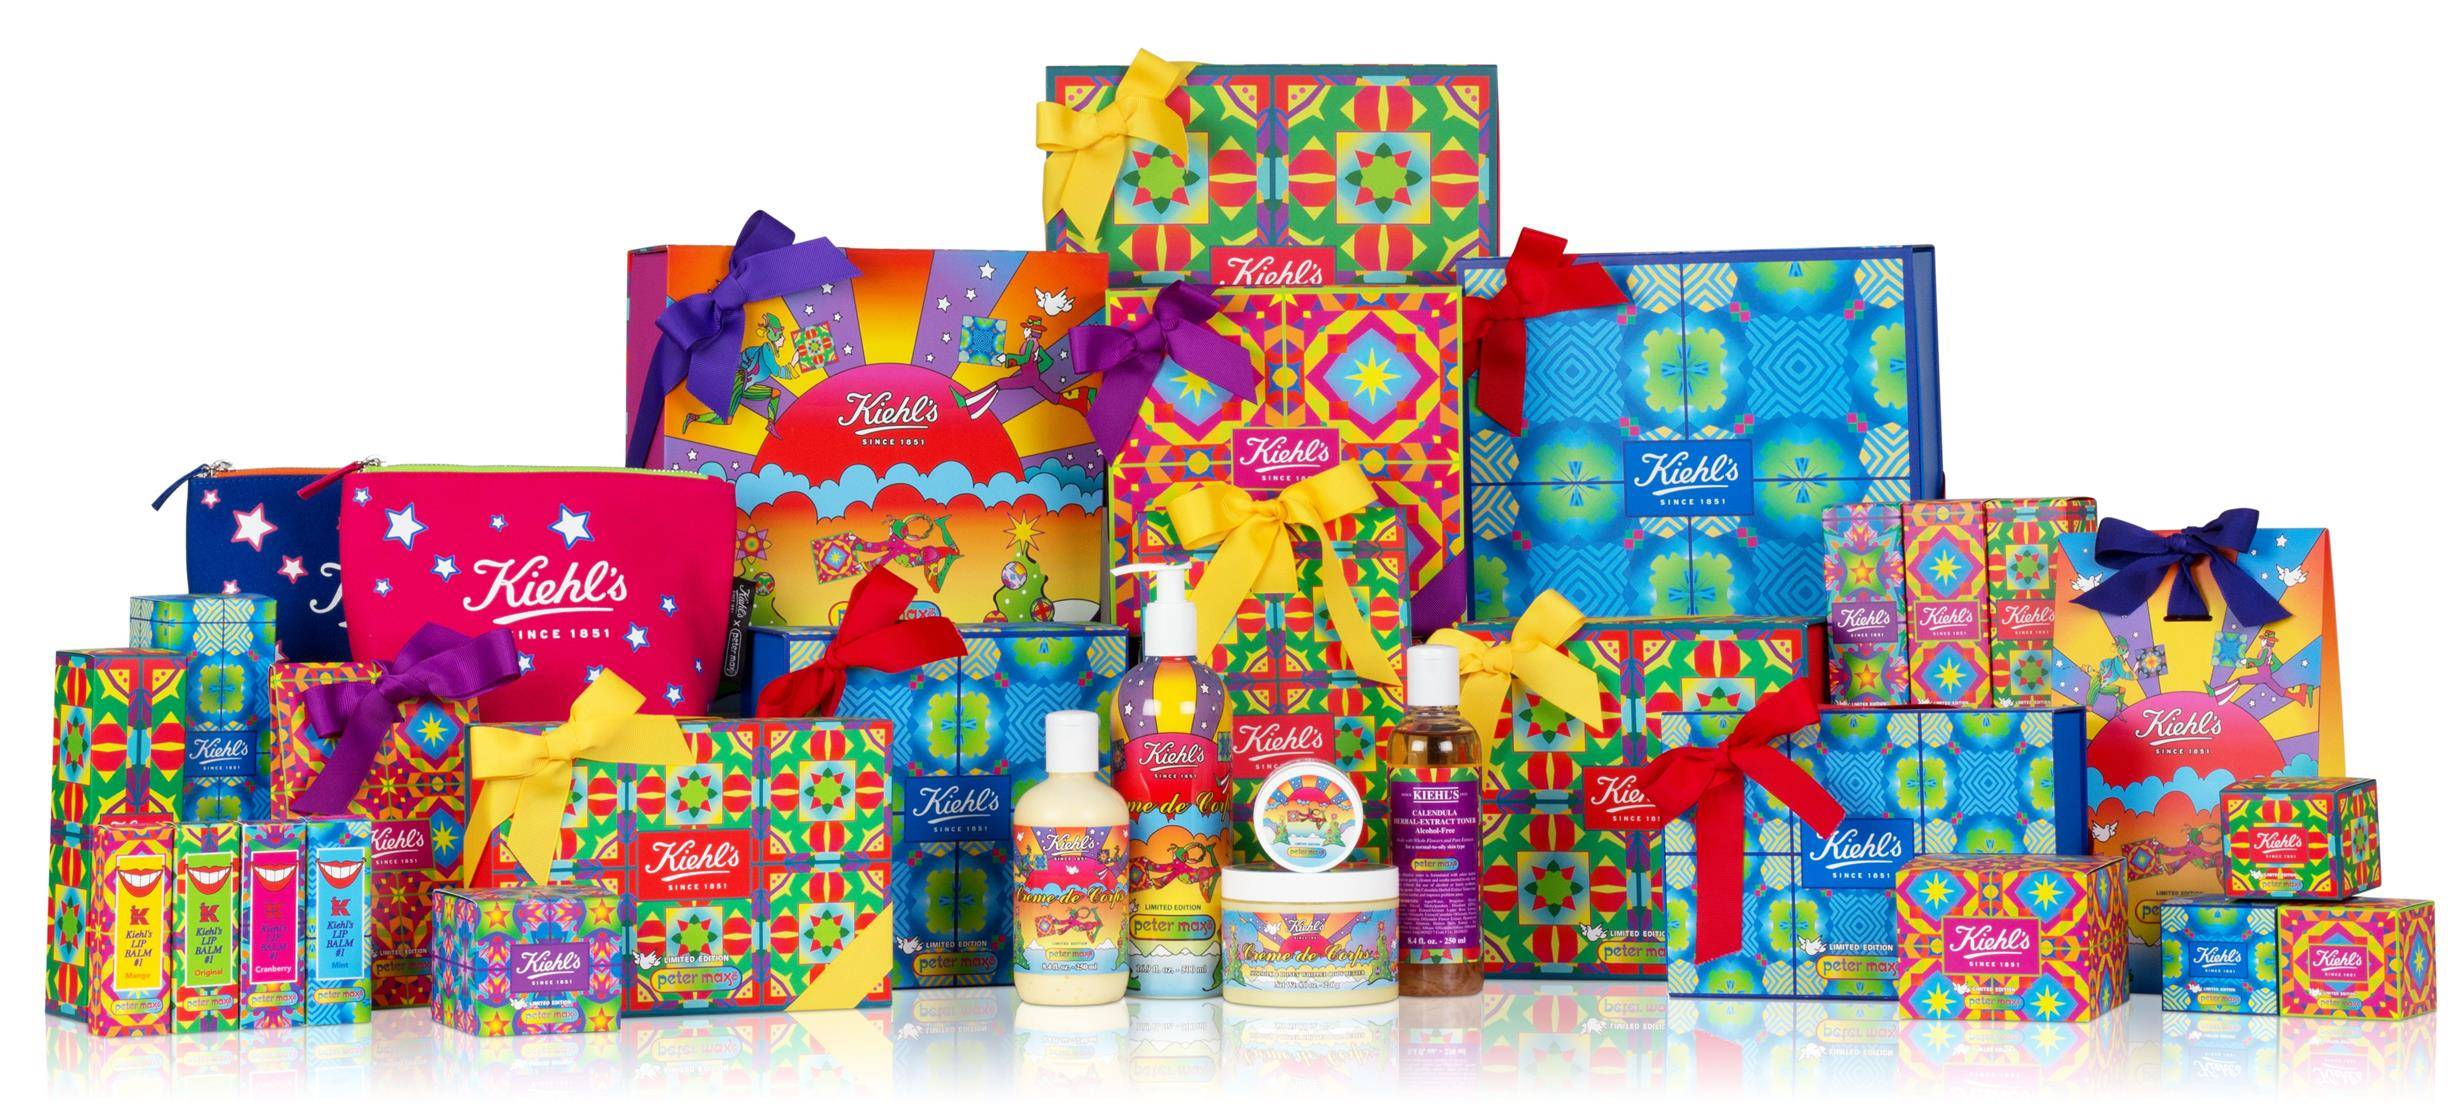 Kiehl's Peter Max beauty review skincare Dubai UAE Christmas gifting fetive limited edition (2)